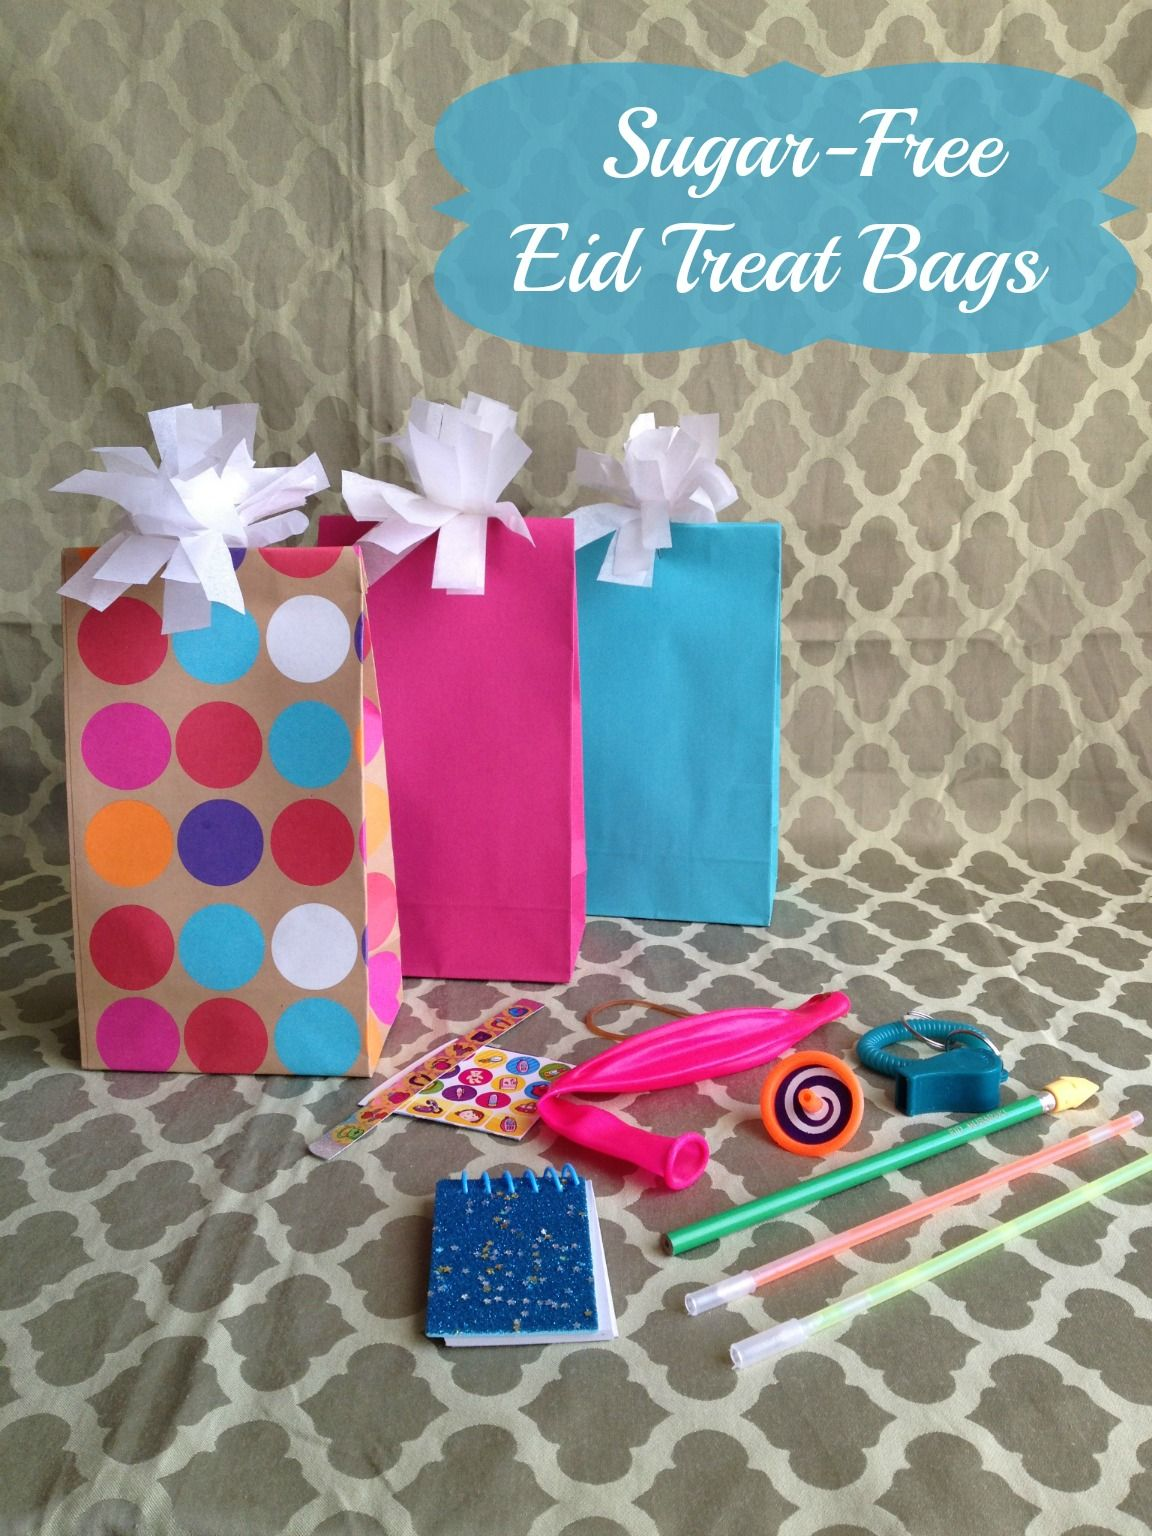 Top Free Printable Eid Al-Fitr Decorations - 59678ee6c14430ce3a69880d2c3a5580  Collection_652972 .jpg